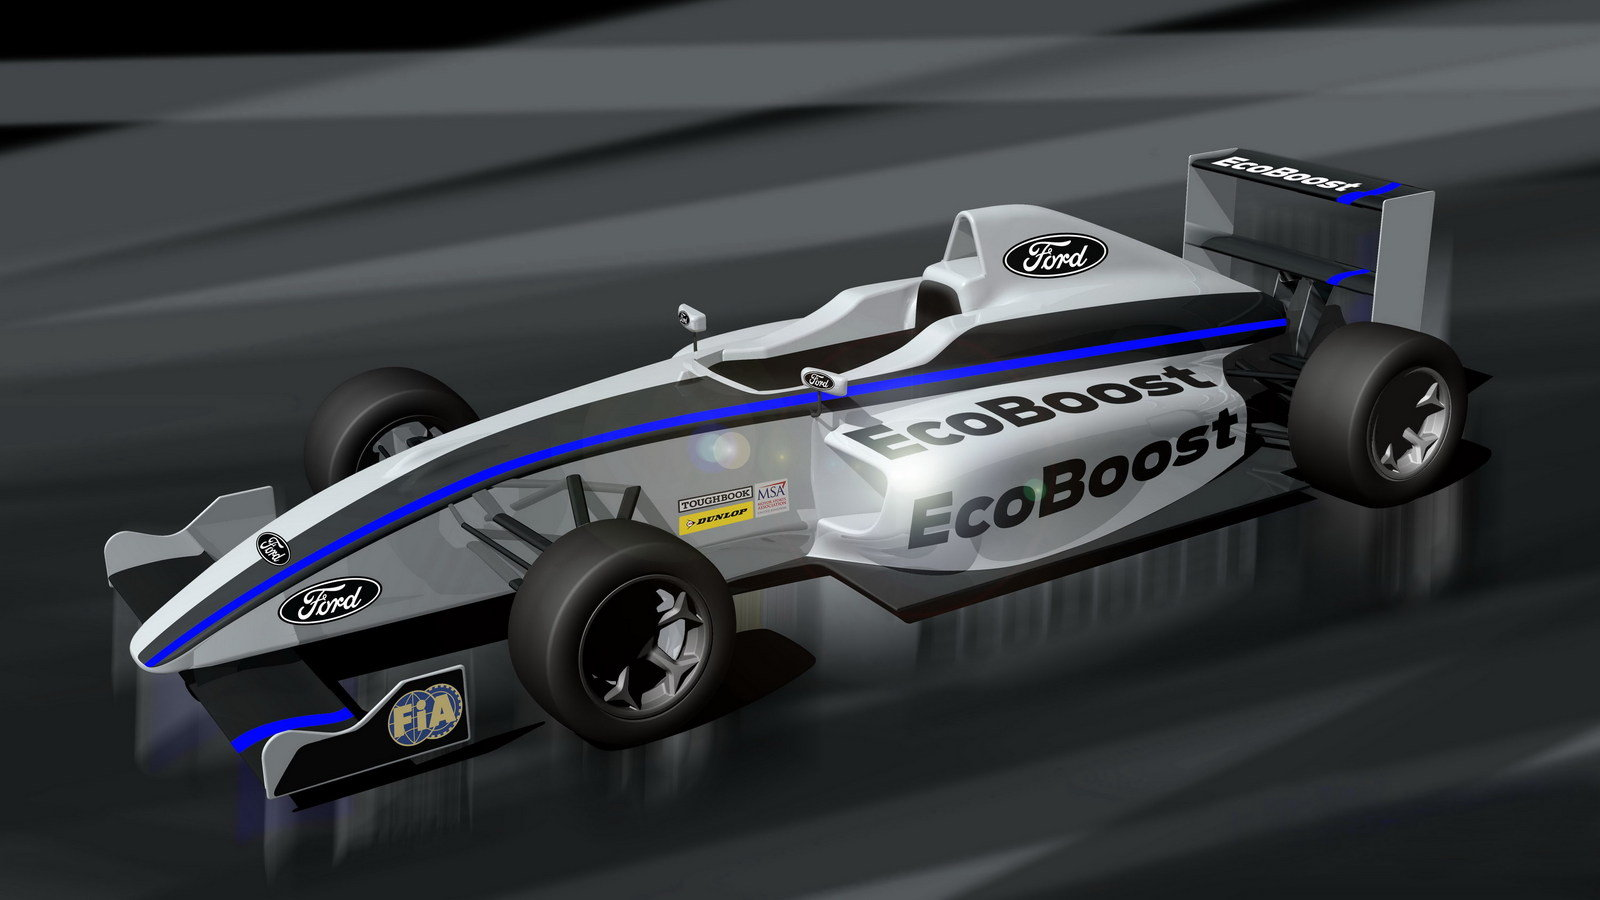 2015 Formula Ford Ecoboost Top Speed